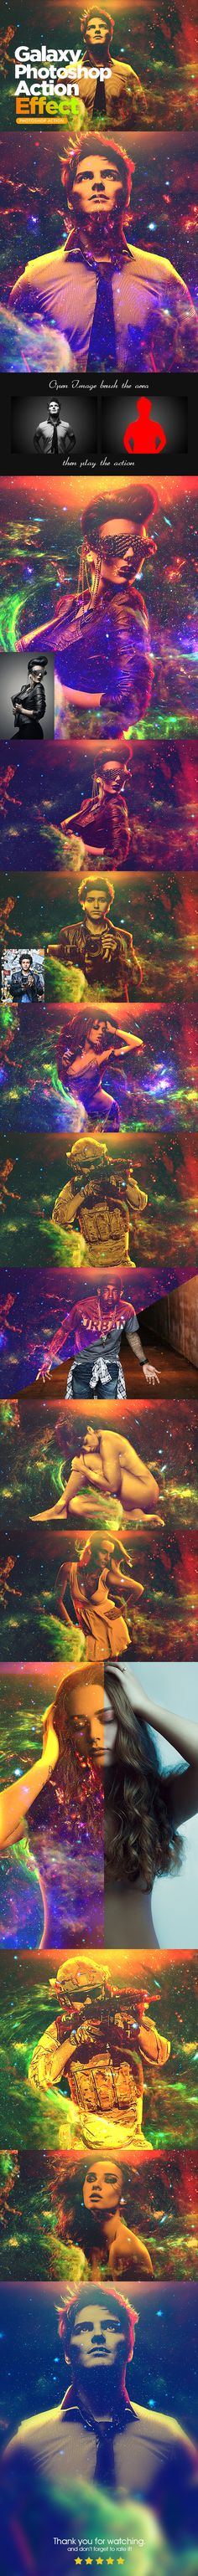 Galaxy #Photoshop Action Effect - #Photo Effects #Actions Download here:  https://graphicriver.net/item/galaxy-photoshop-action-effect/20333106?ref=alena994